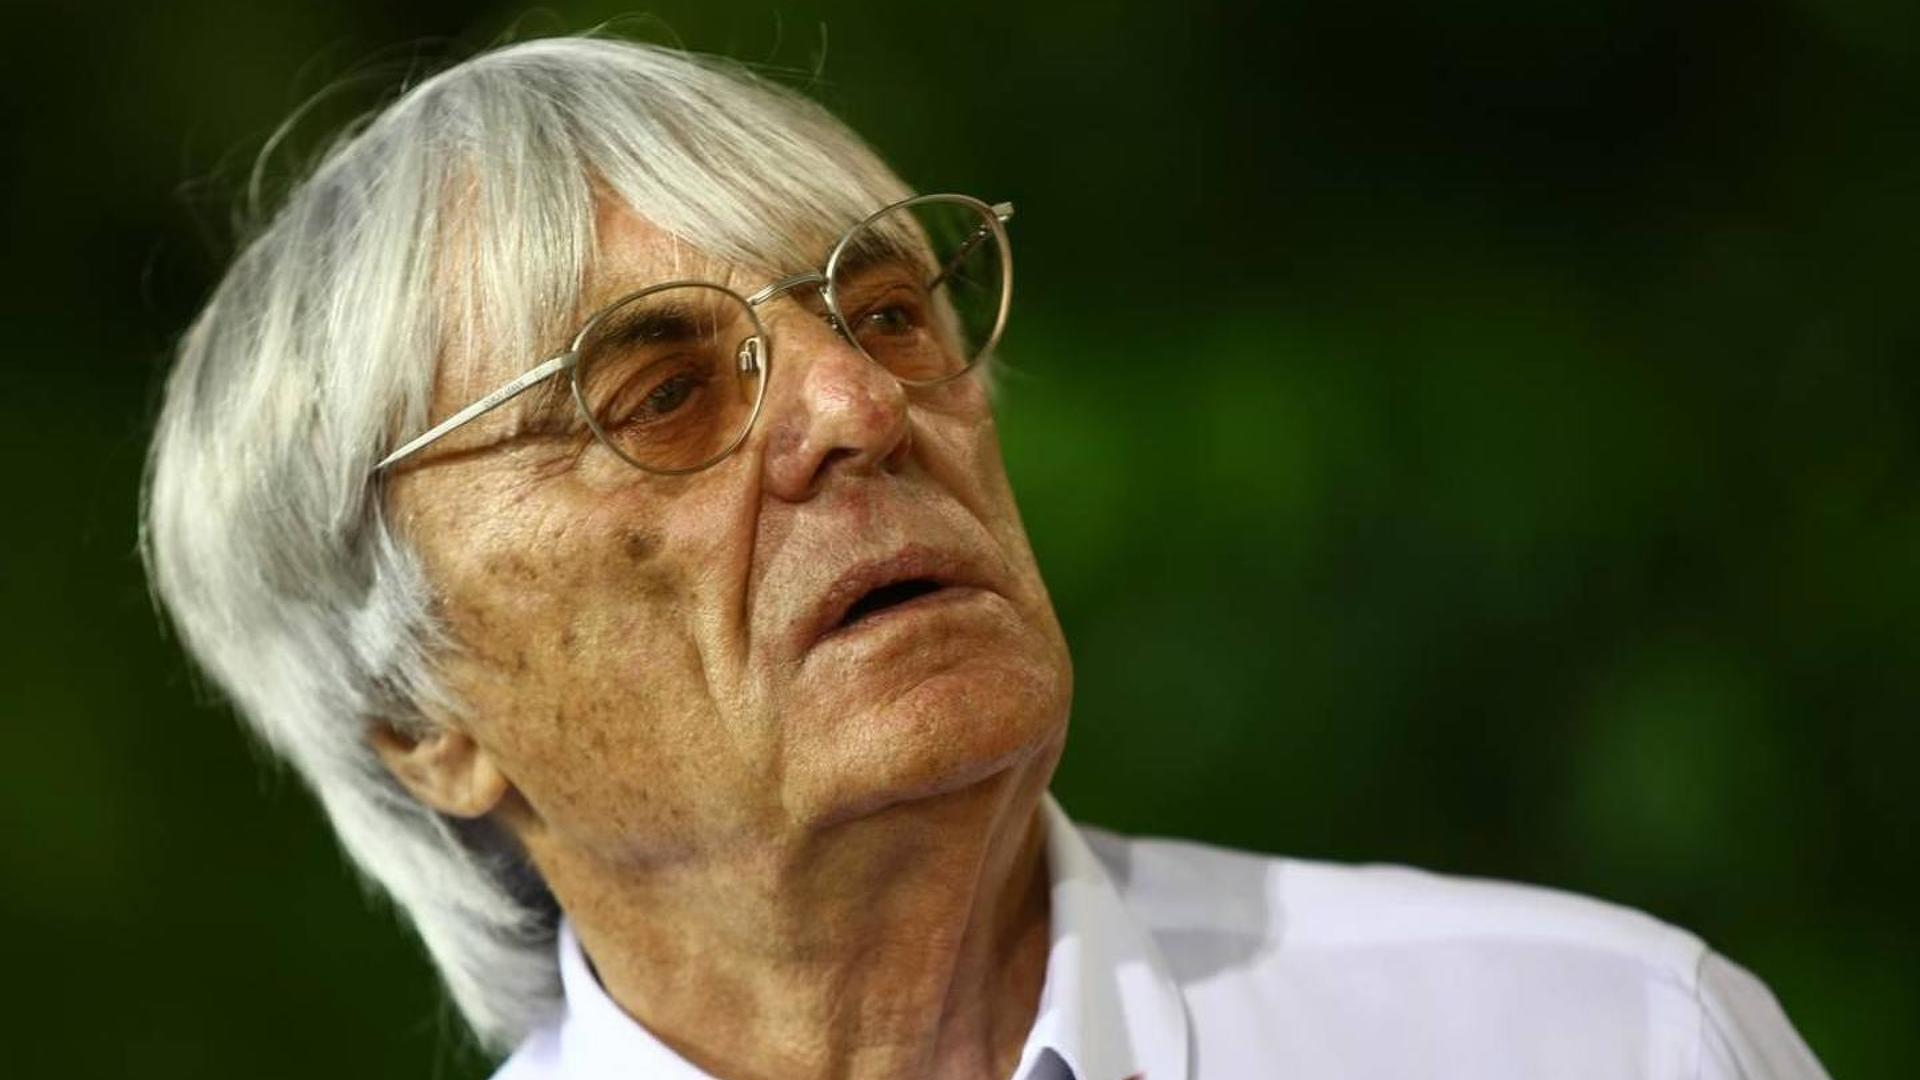 Ecclestone could face up to 10 years in prison in bribery affair